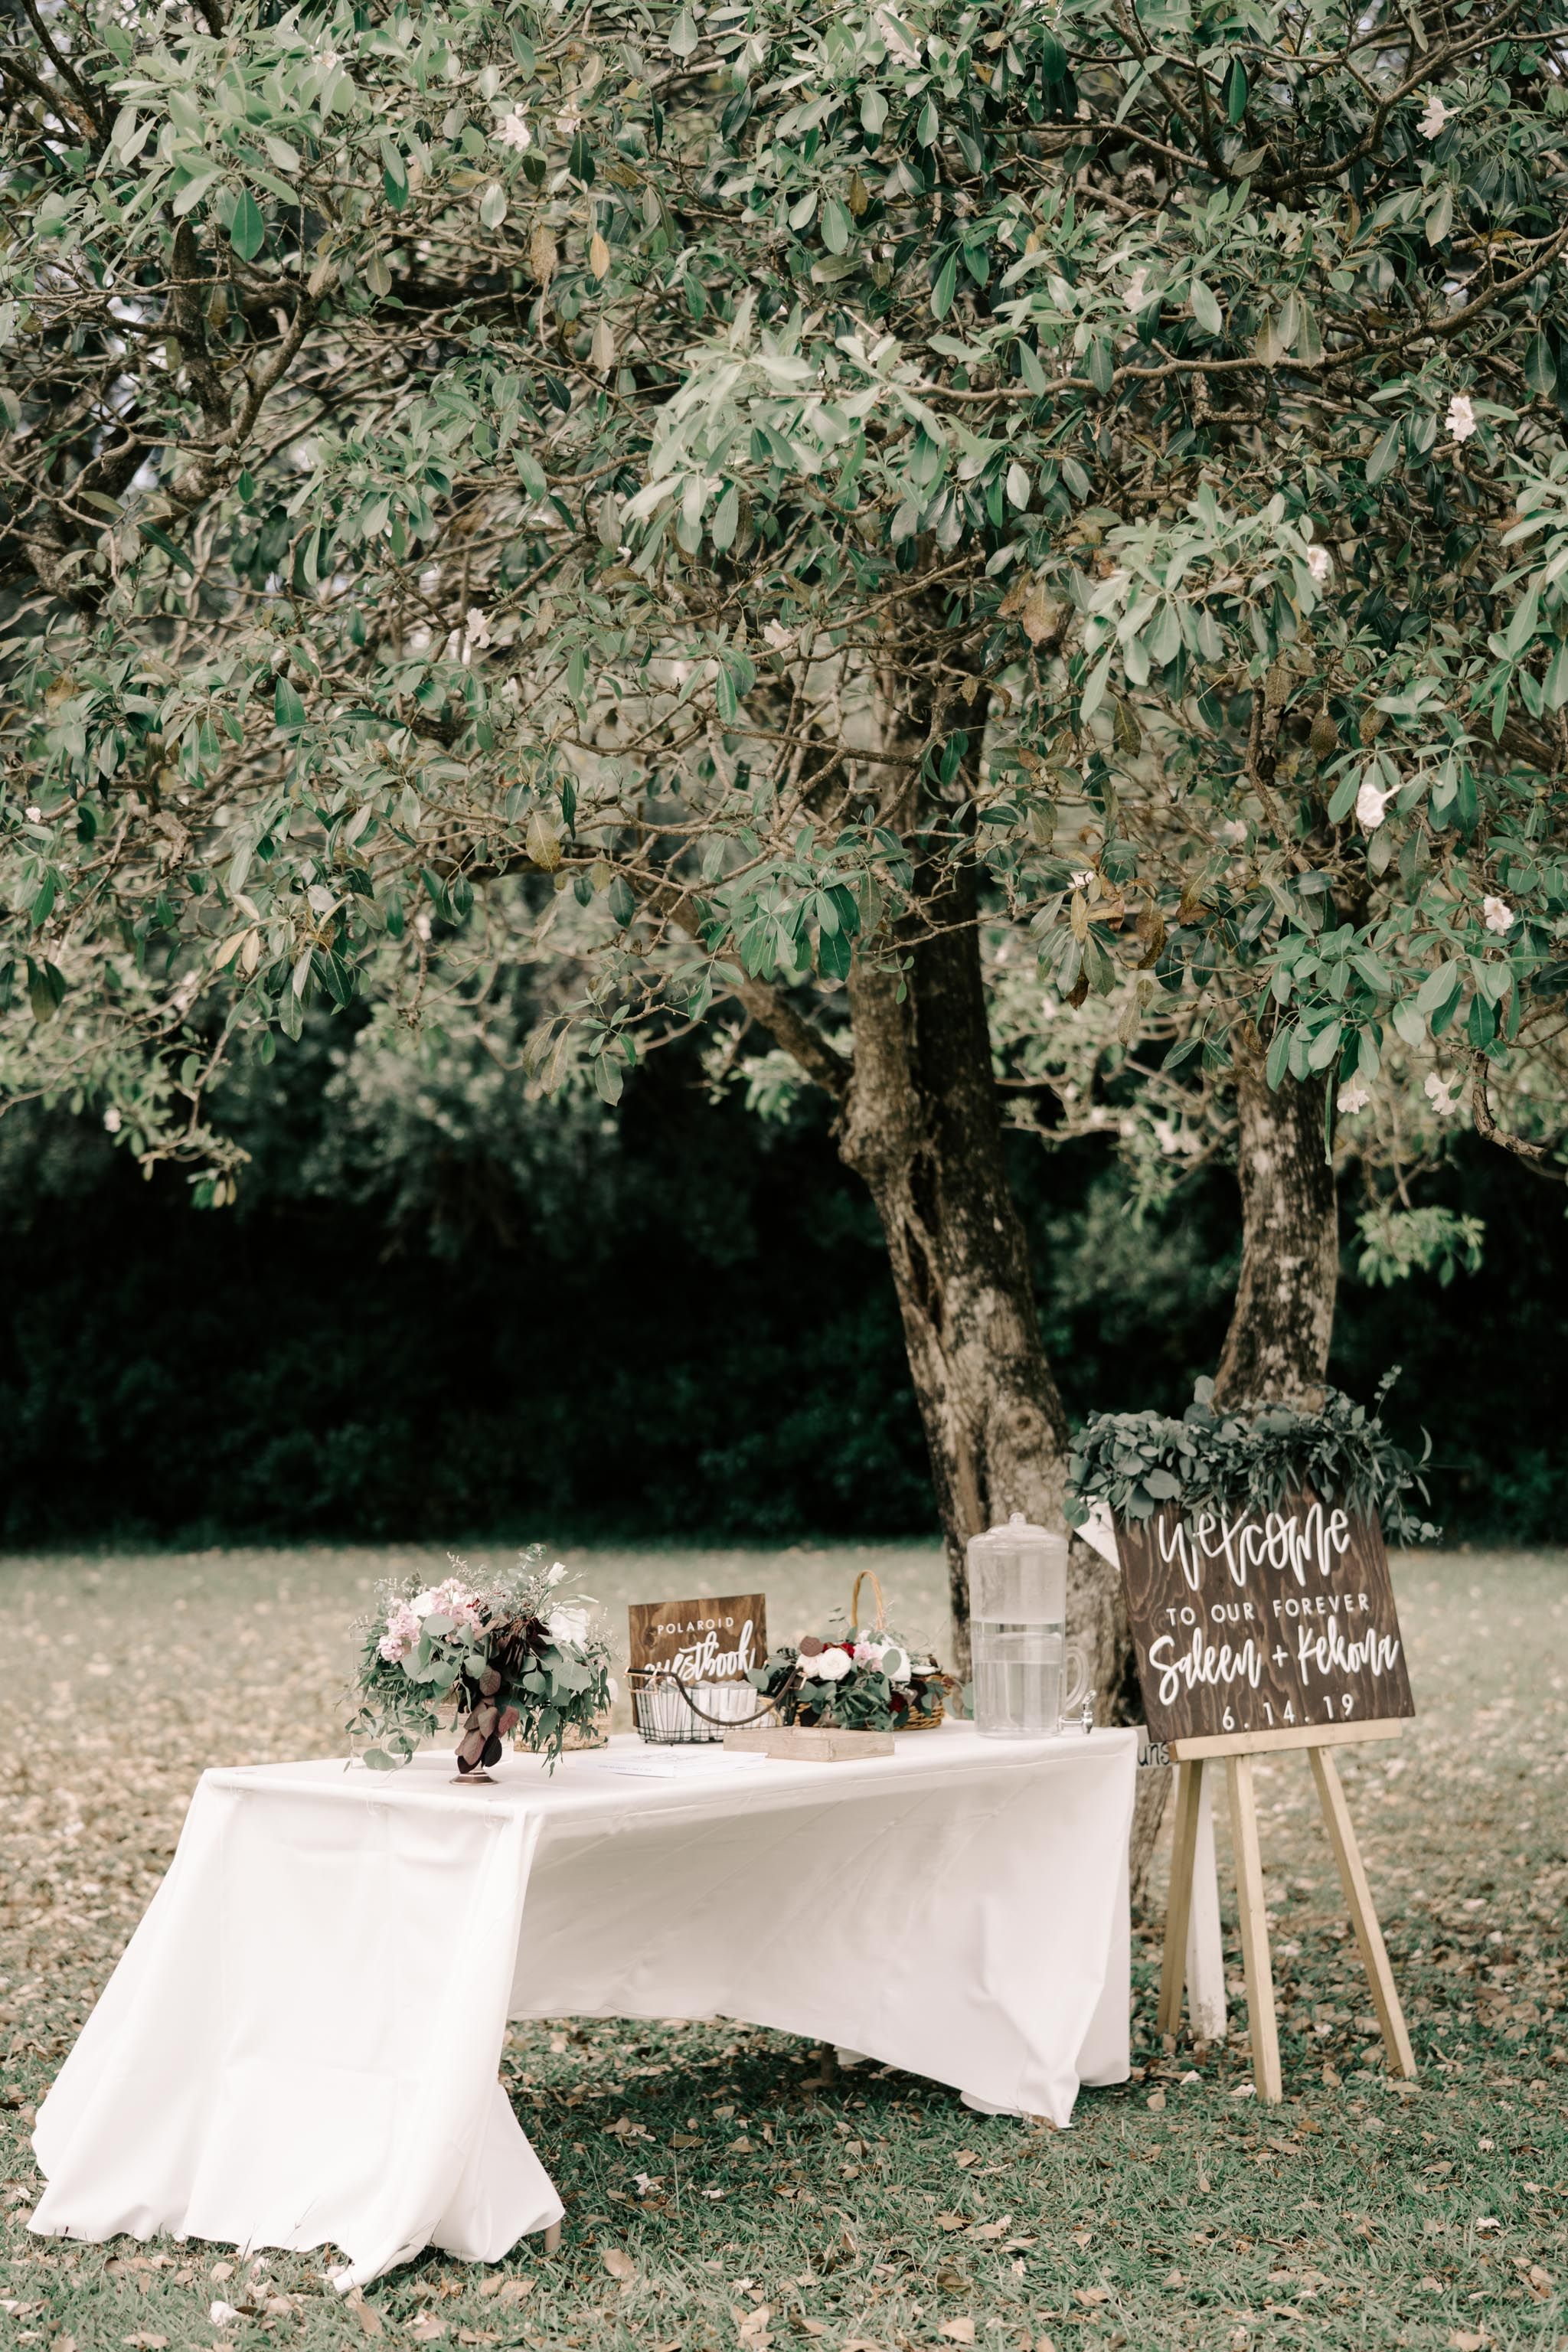 Wedding Ceremony Greeting Table Idea - Sunset Ranch Hawaii Wedding By Oahu Wedding Photographer Desiree Leilani